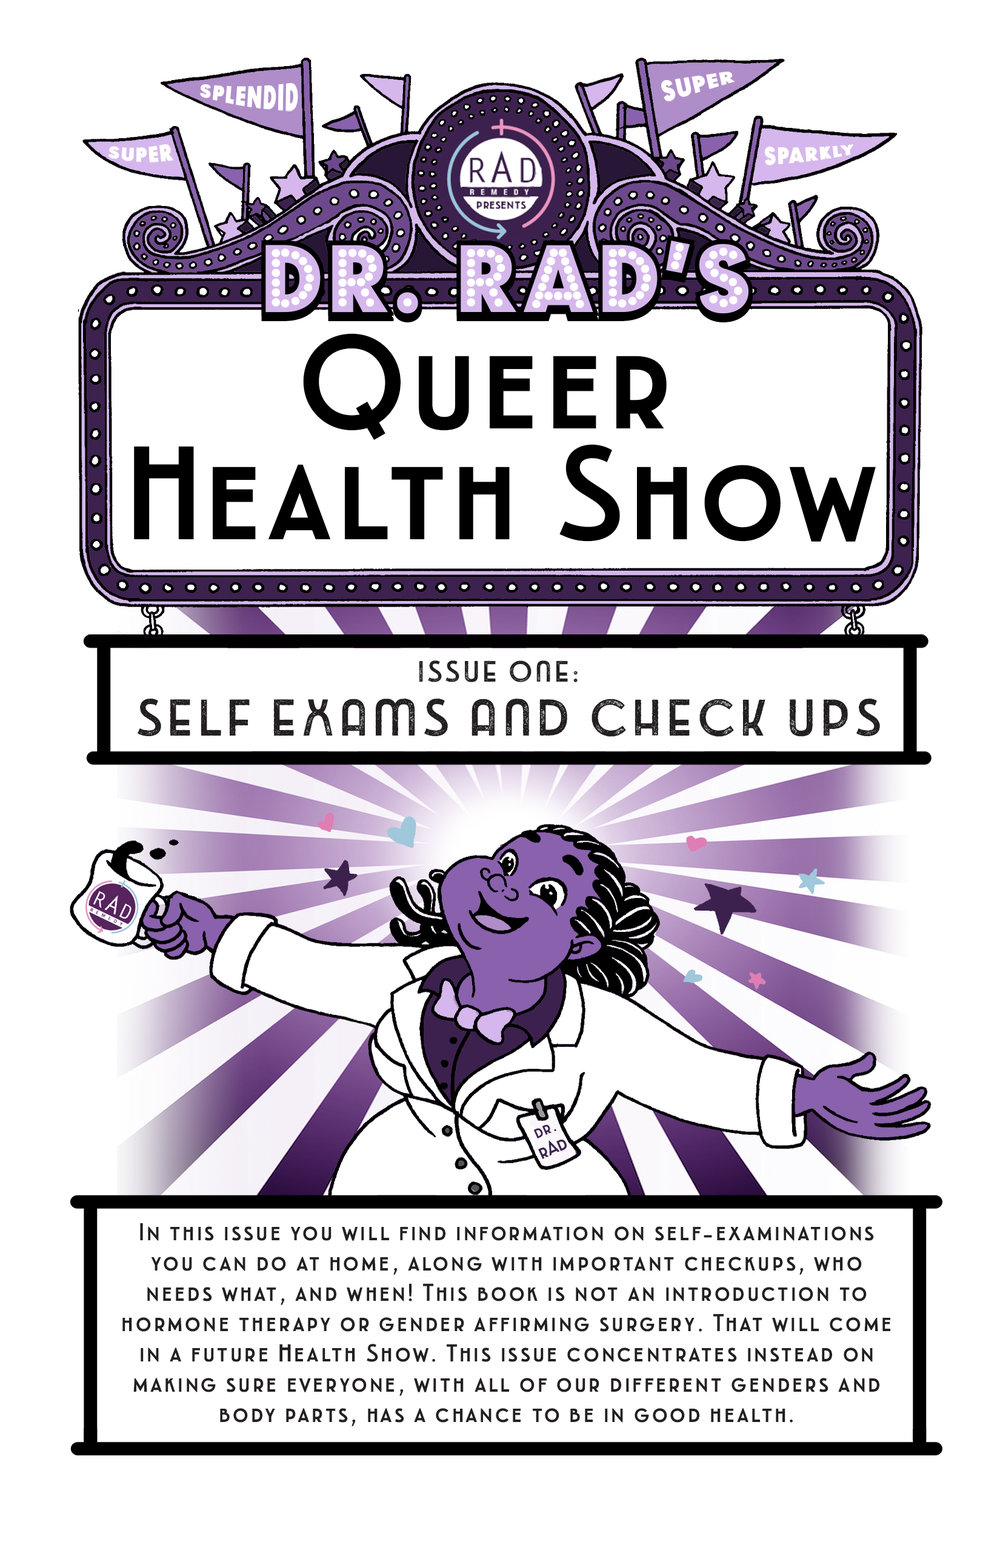 Dr. RAD's Queer Health Show - This book is the first issue in a collaboration between RAD Remedy and Isabella Rotman to release a series of health guides about self-exams, checkups, hormone options, and other topics related to trans and queer health and wellness.RAD Remedy is an organization focused on healthcare for trans, gender non-conforming, intersex & queer folks. RAD's mission is to connect trans, gender non-conforming, intersex, and queer folks to accurate, safe, respectful, and comprehensive care in order to improve individual and community health. RAD's main project is the RAD database, which is filled with community-reviewed providers. Download here!